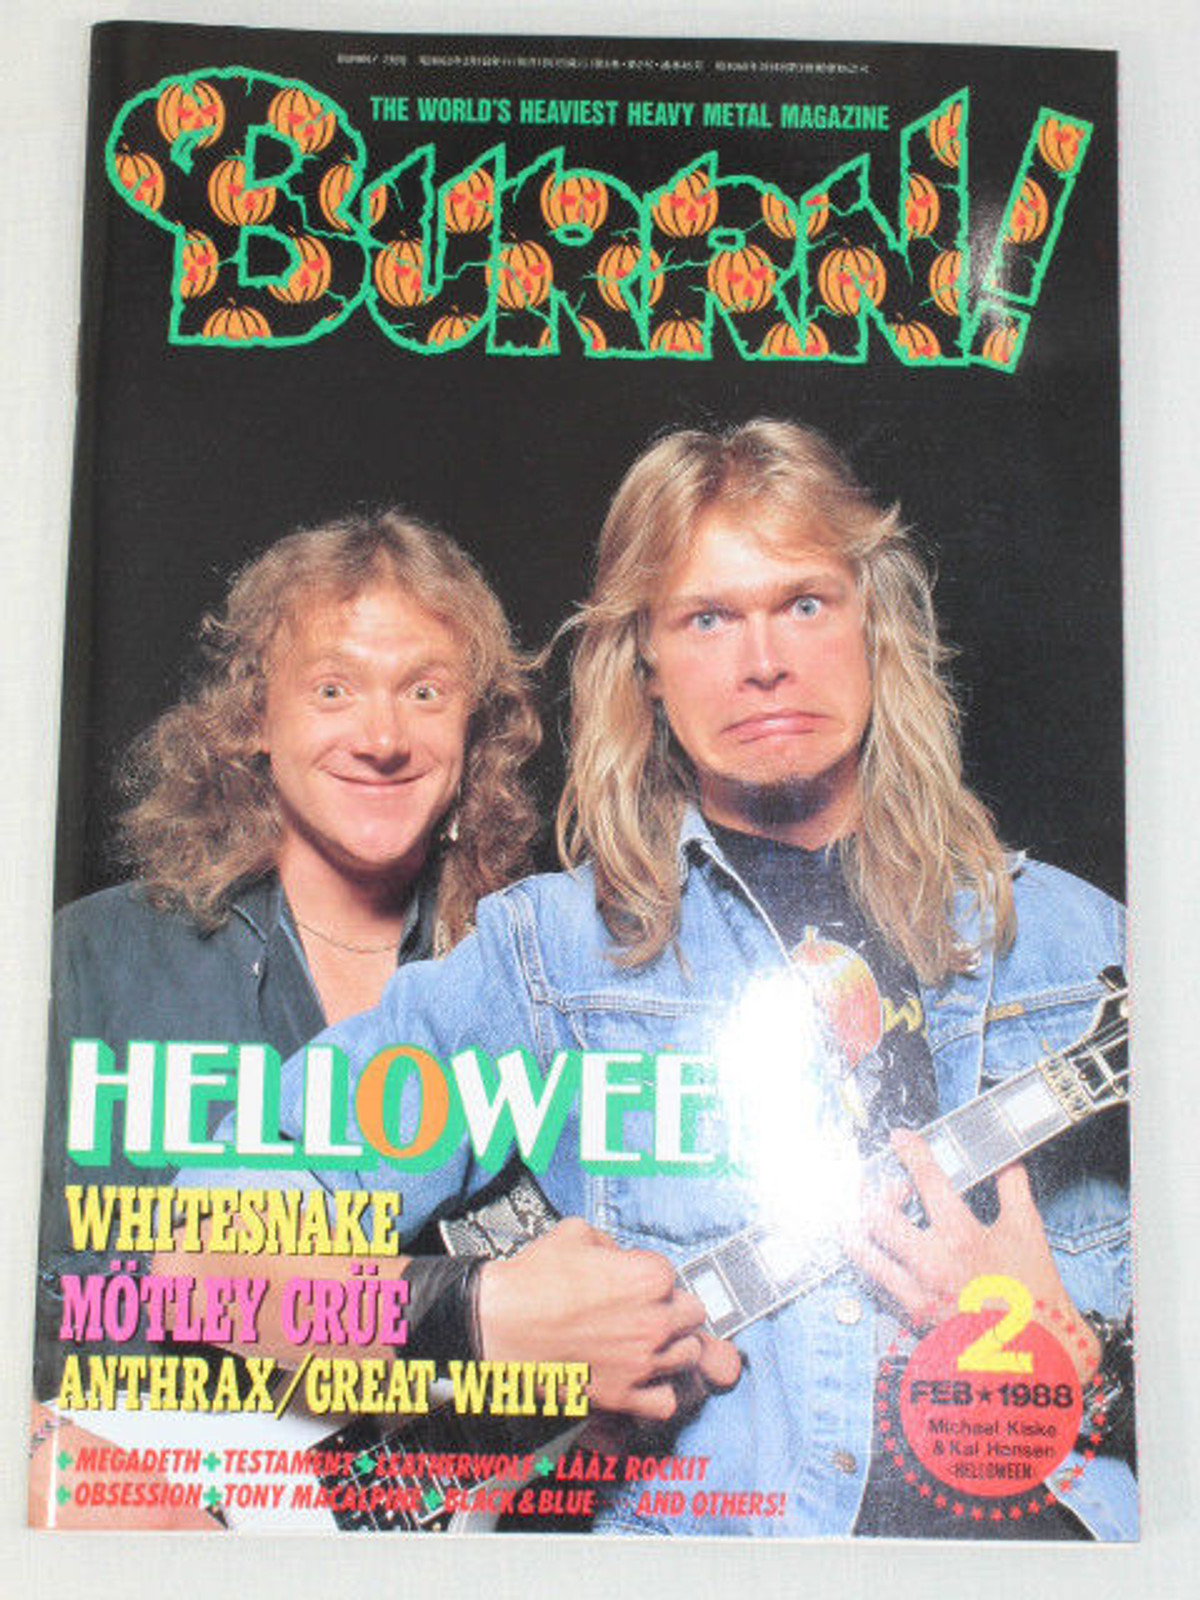 1988/02 BURRN! Japan Rock Magazine HELLOWEEN/GUNS N' ROSES/ANTHRAX/TESTAMENT